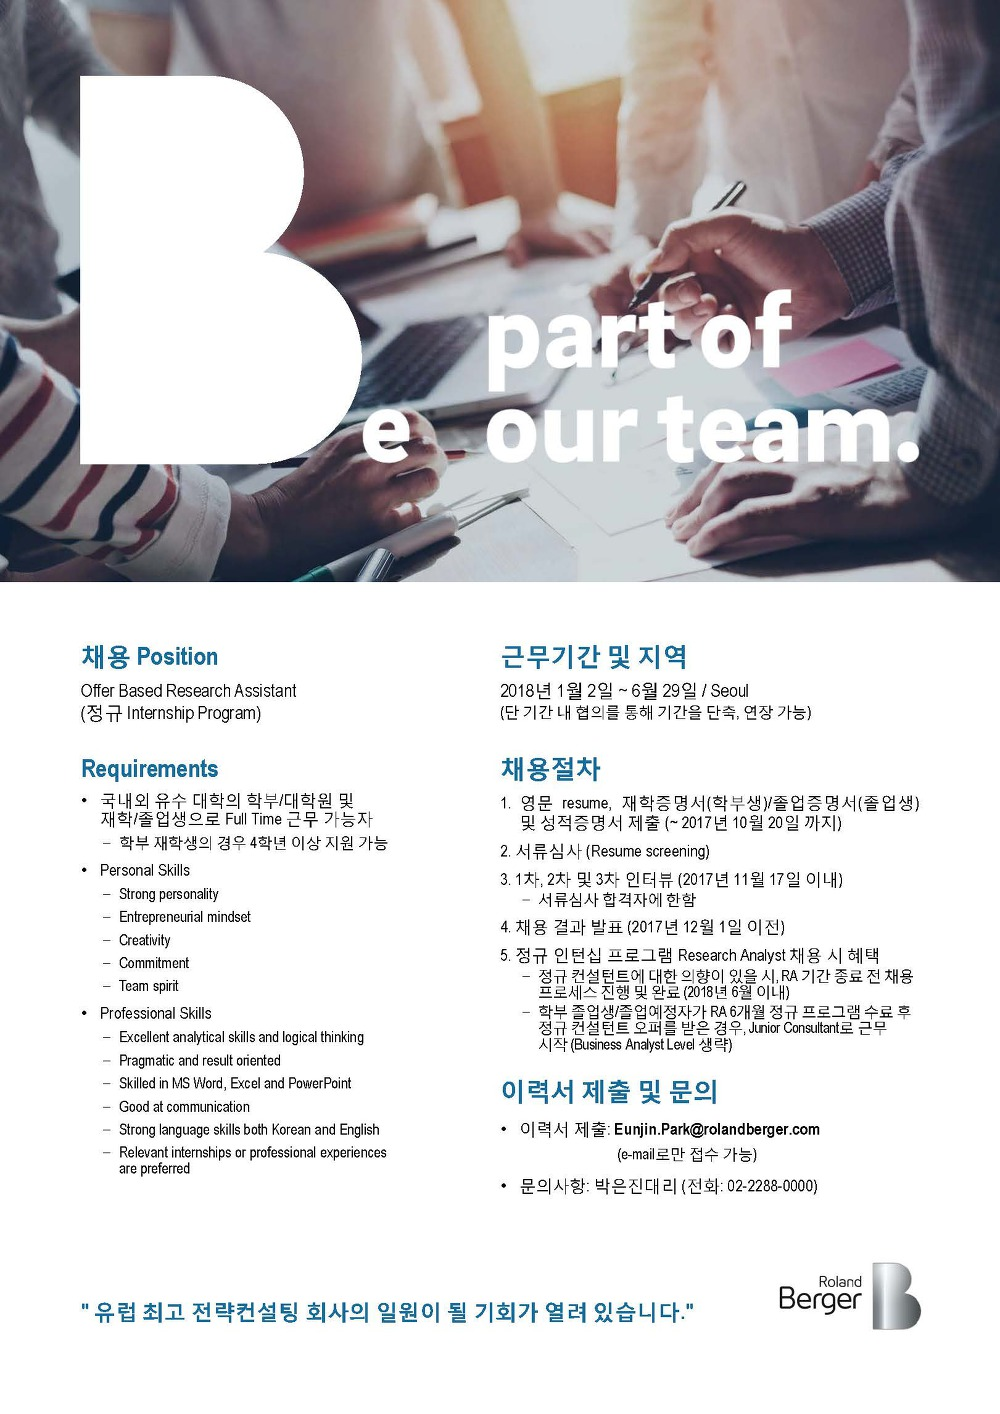 롤랜드버거] Offer Based Research Assistant (정규 Internship